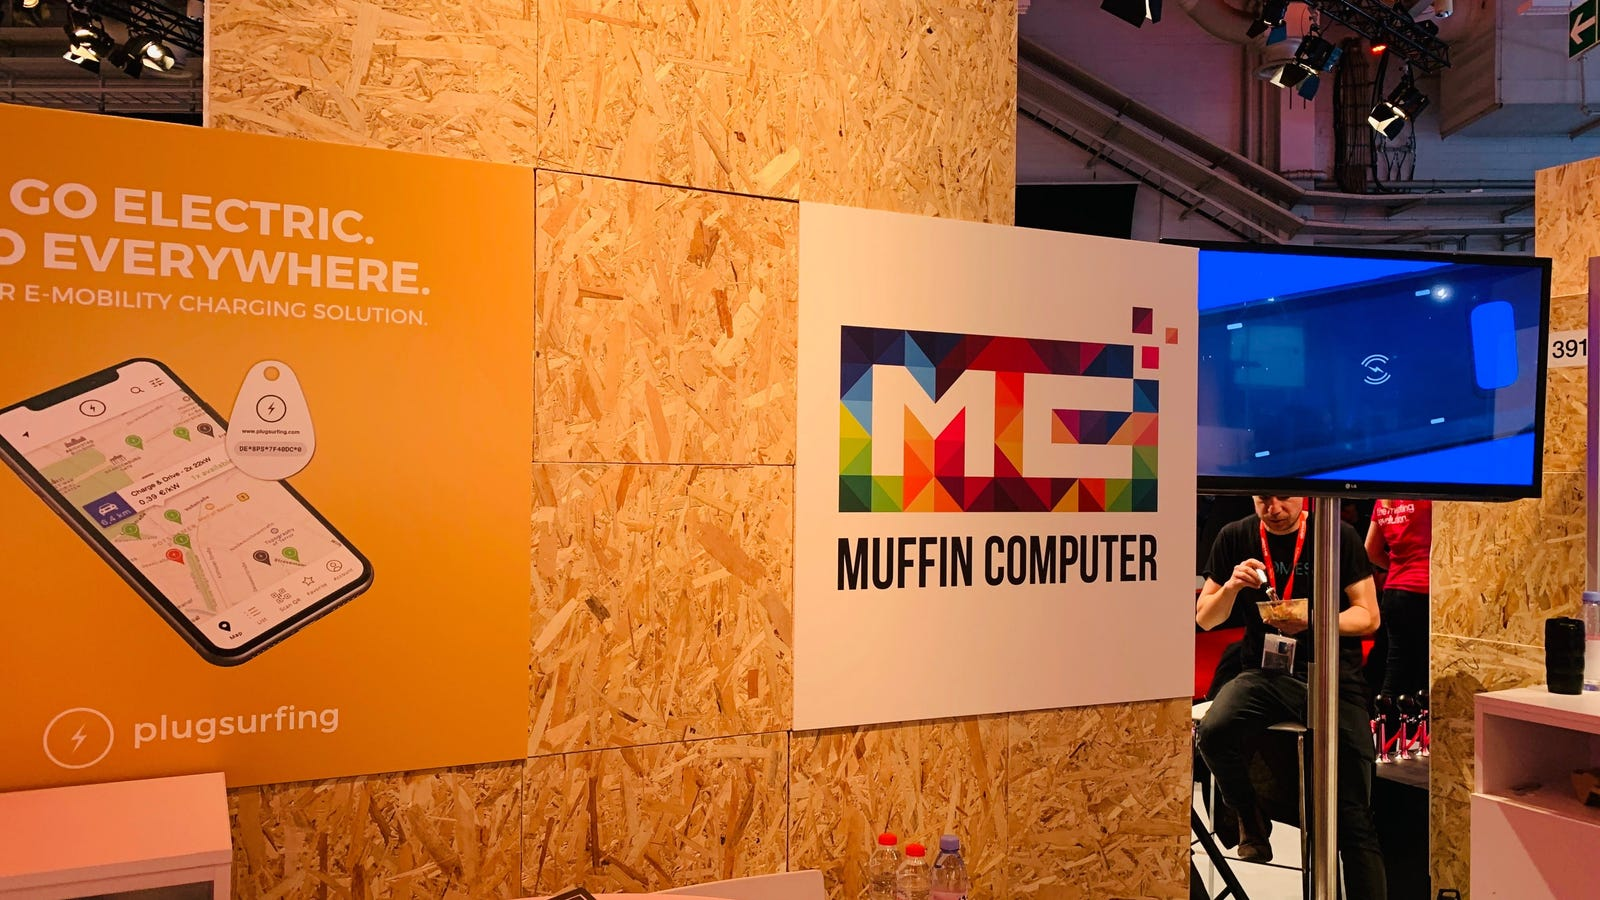 Russian Startup 'Muffin Computer' Wants to Keep Your Smartphone Cozy on Cold Days